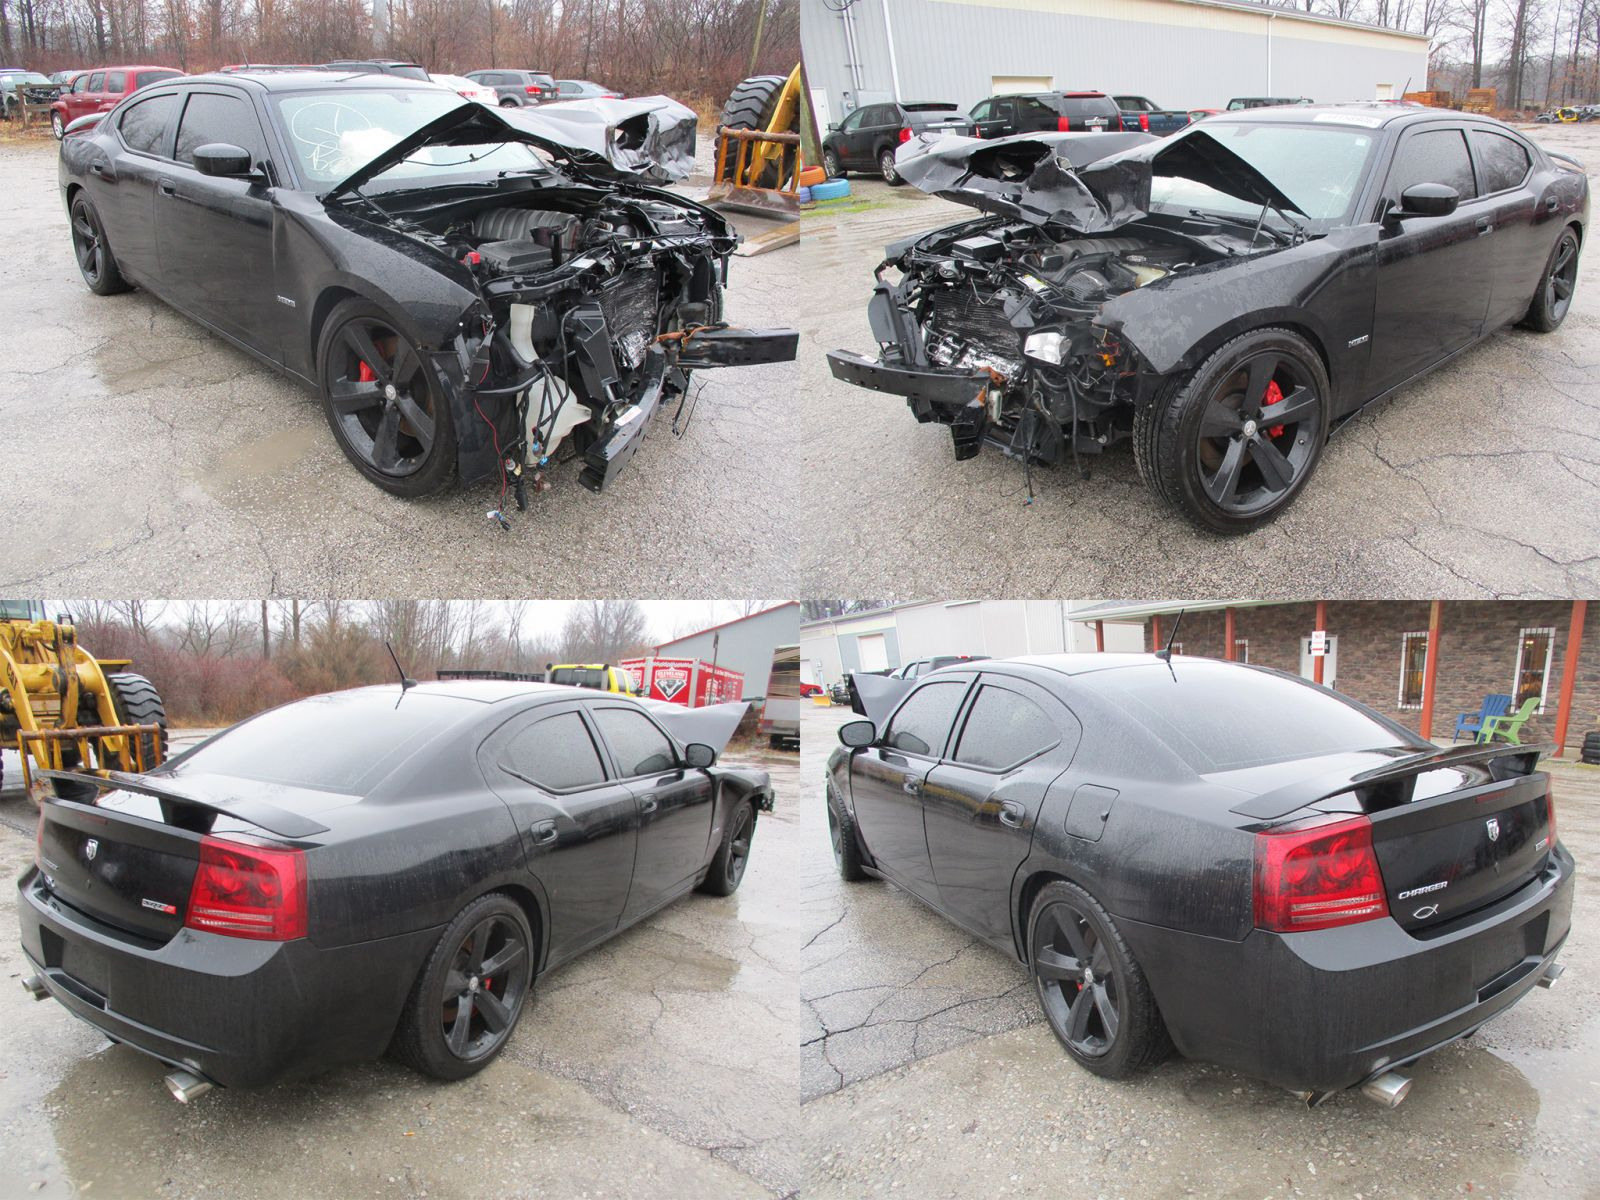 Dodge Hellcat For Sale >> 2008 Black Dodge Charger SRT-8 - Cleveland Power & Performance